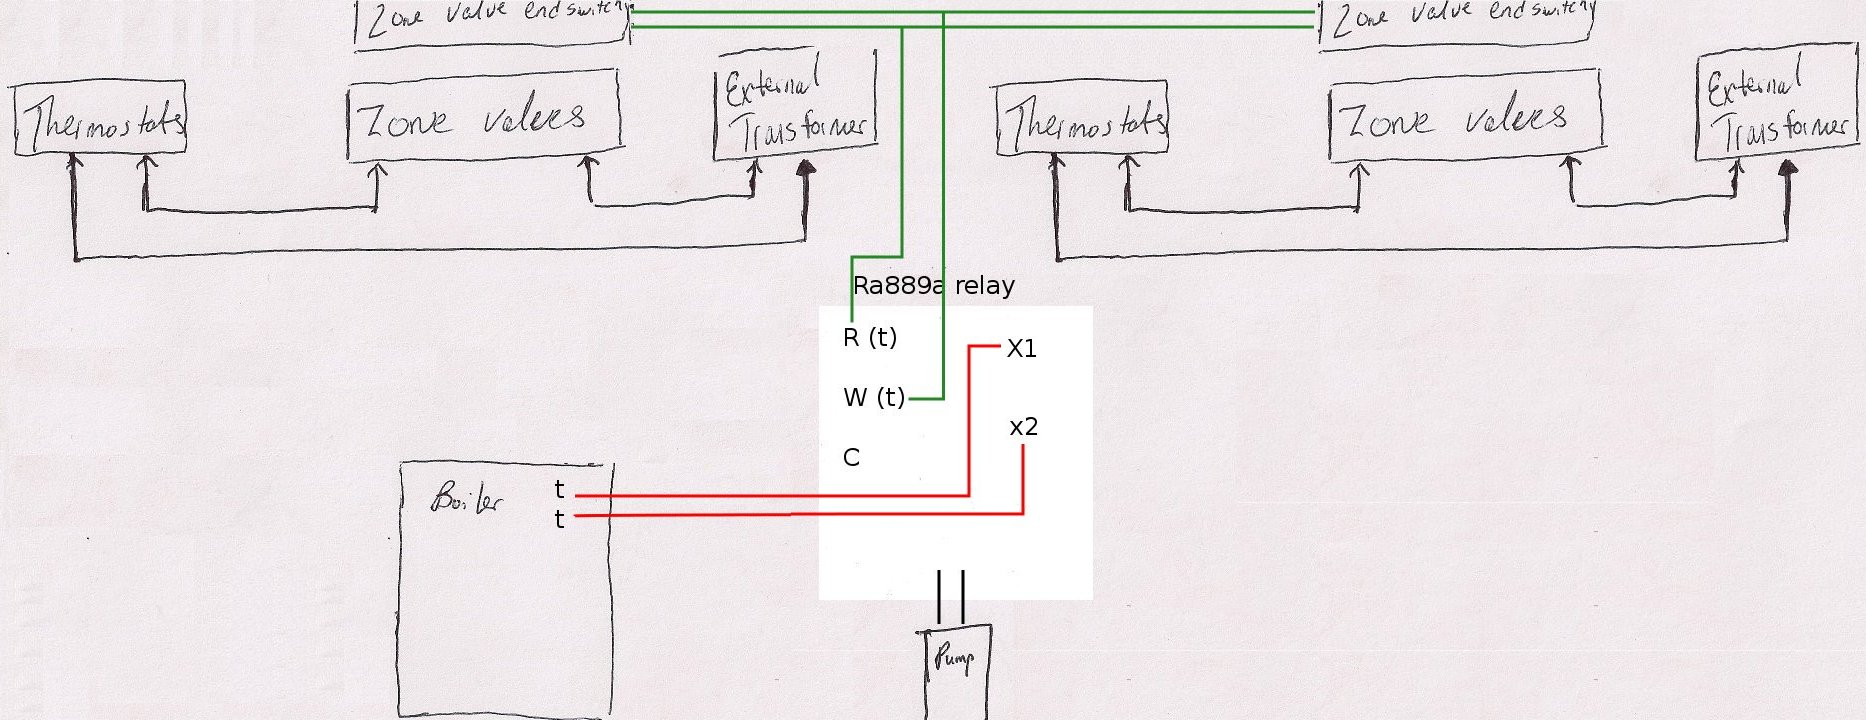 V8043e1012 To 2 Wire Thermostat Wiring Diagram 2 Wire